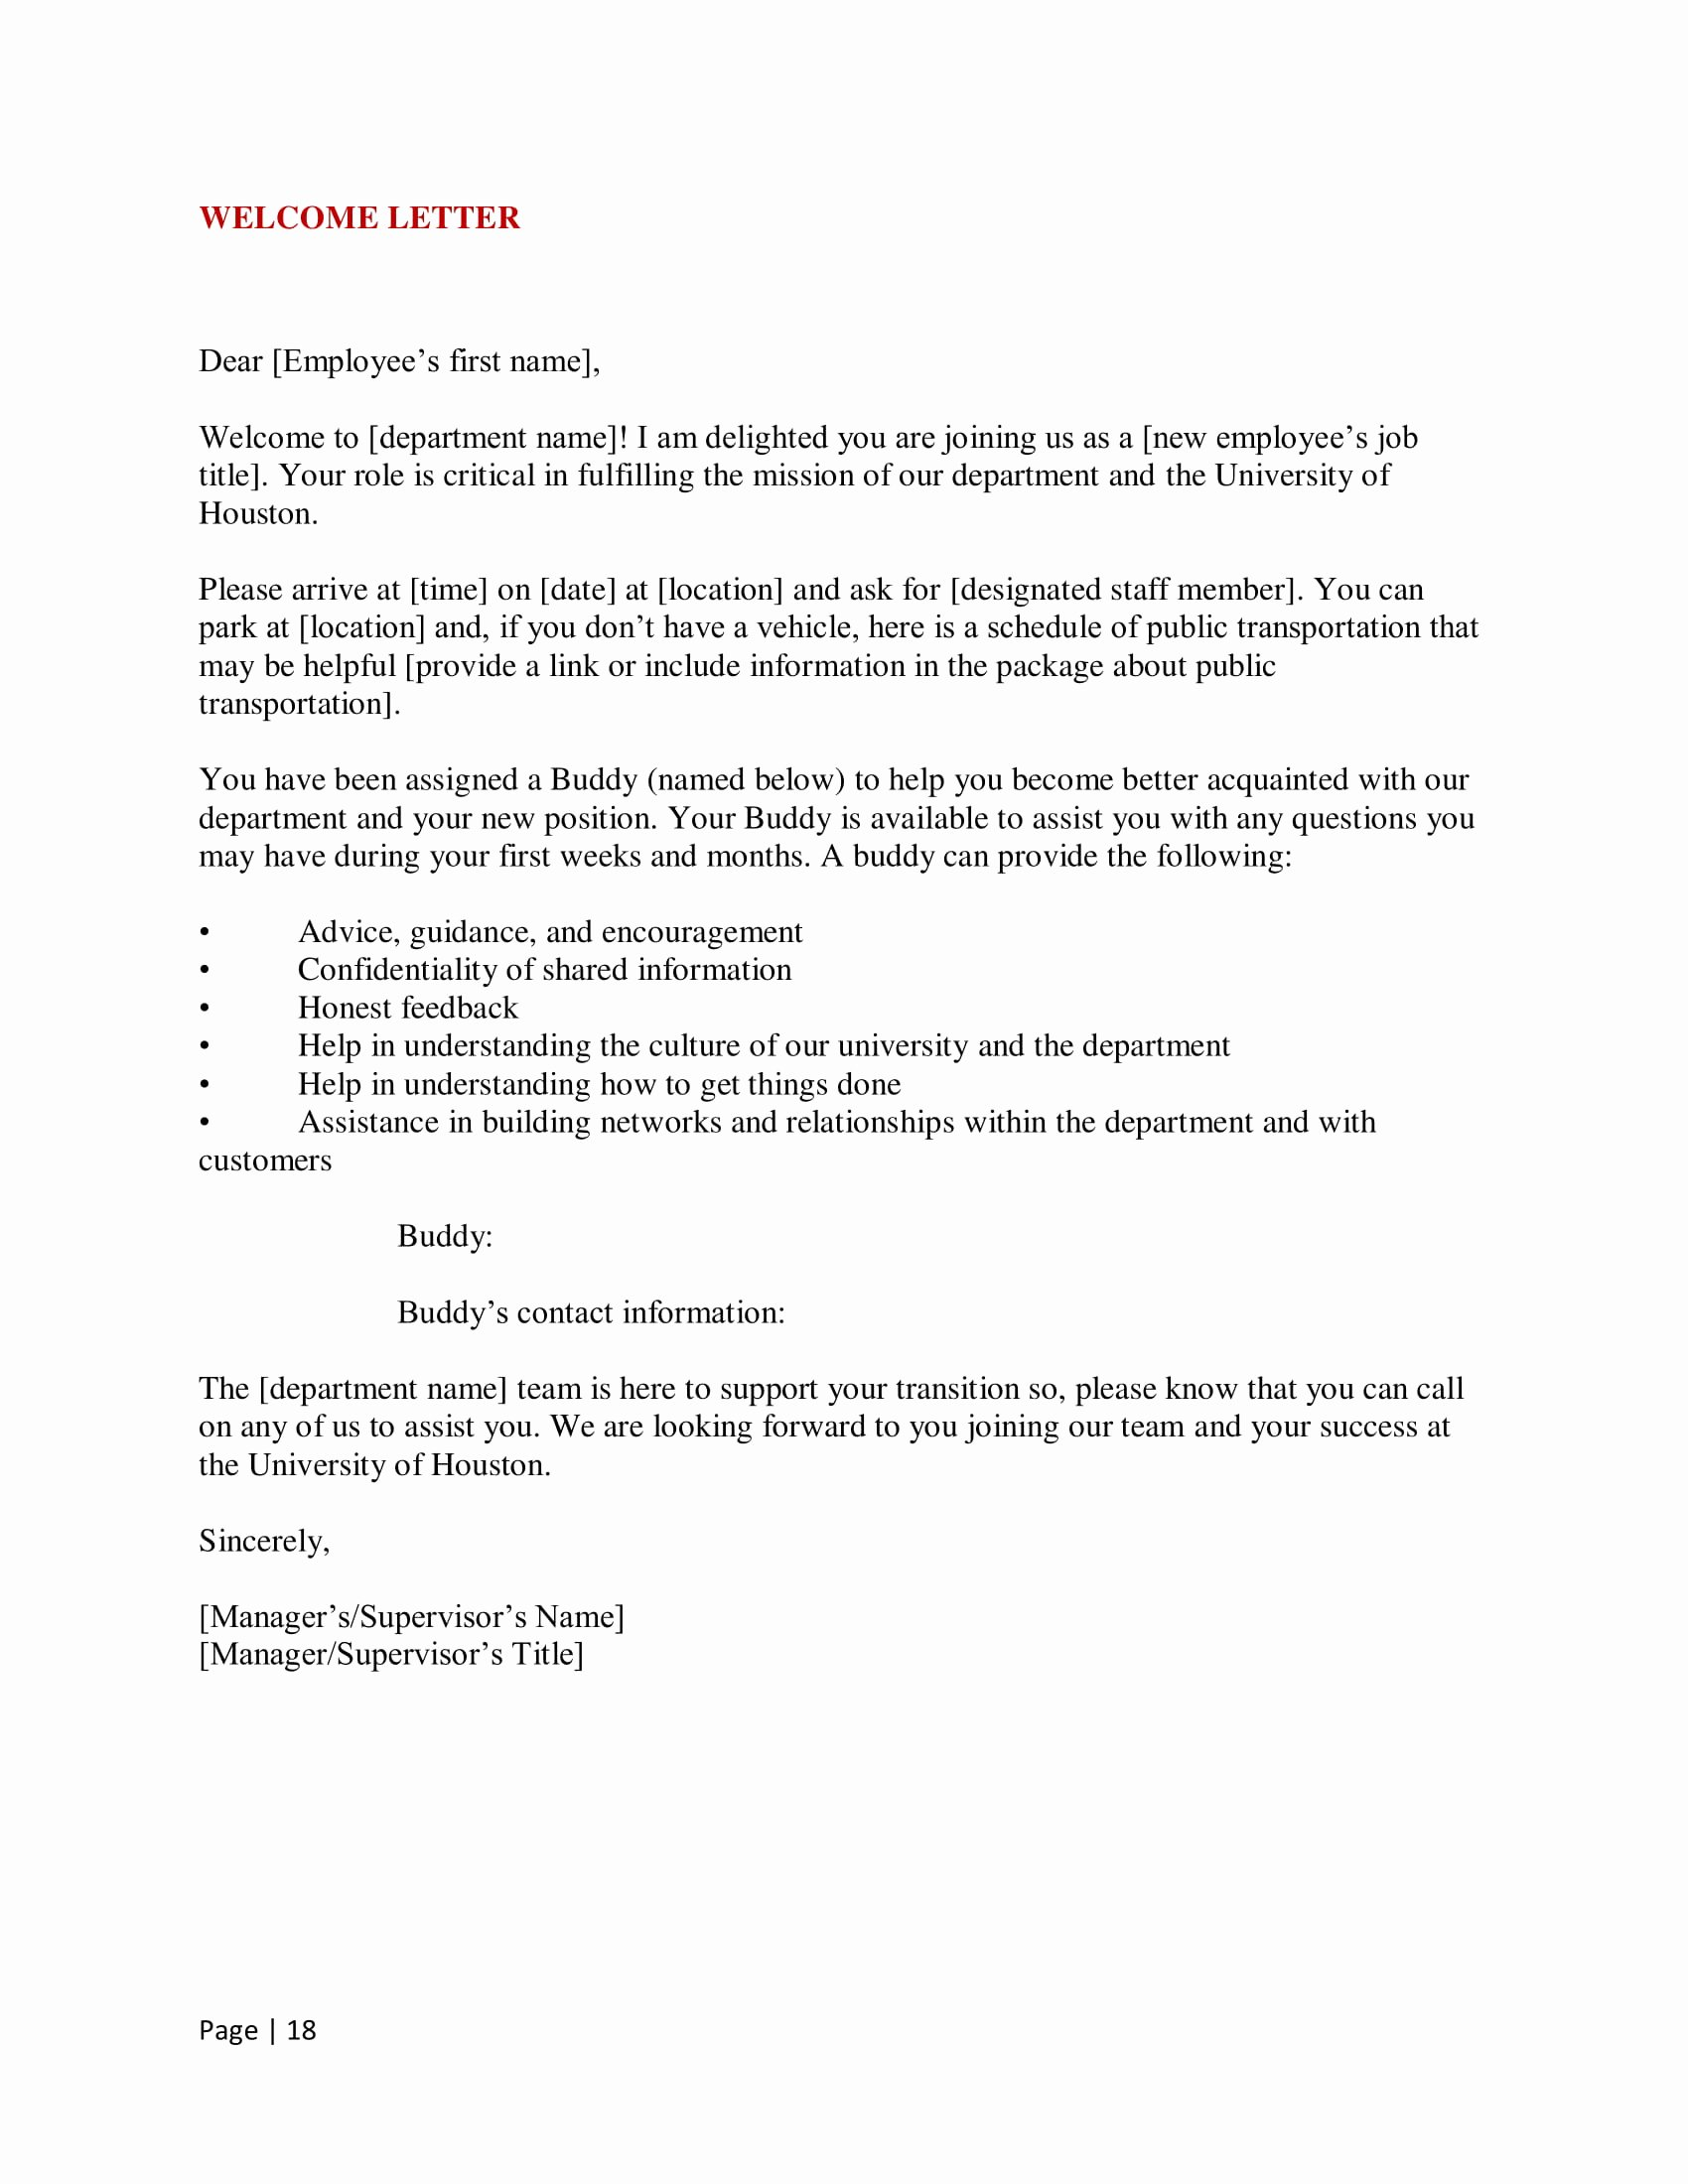 New Hire Letter Samples Lovely 9 New Hire Wel E Letter Examples Pdf